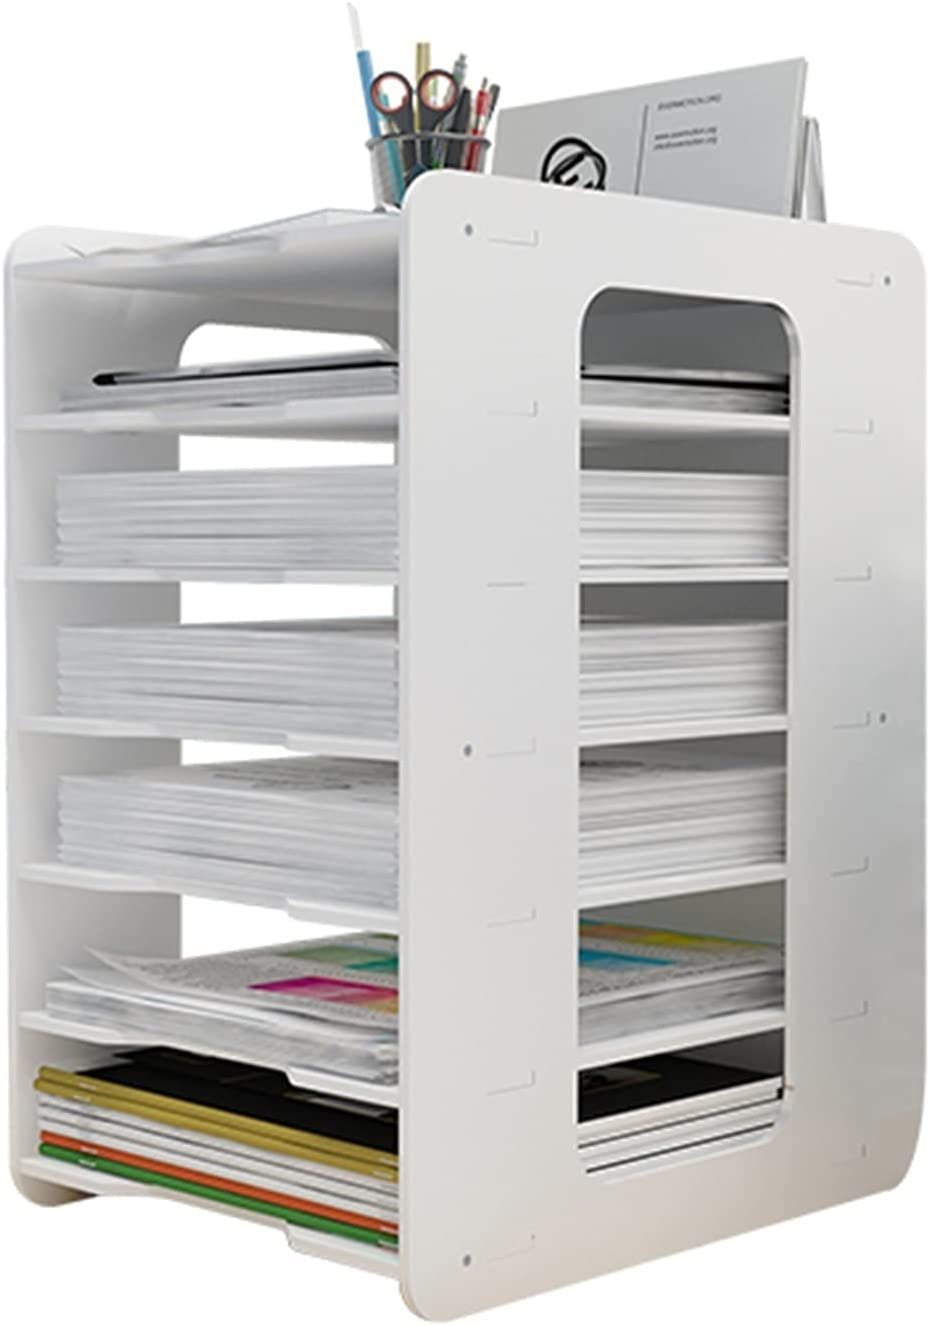 MZQ Multifunctional White Super popular specialty store Vertical Paper Holder Max 77% OFF Org File